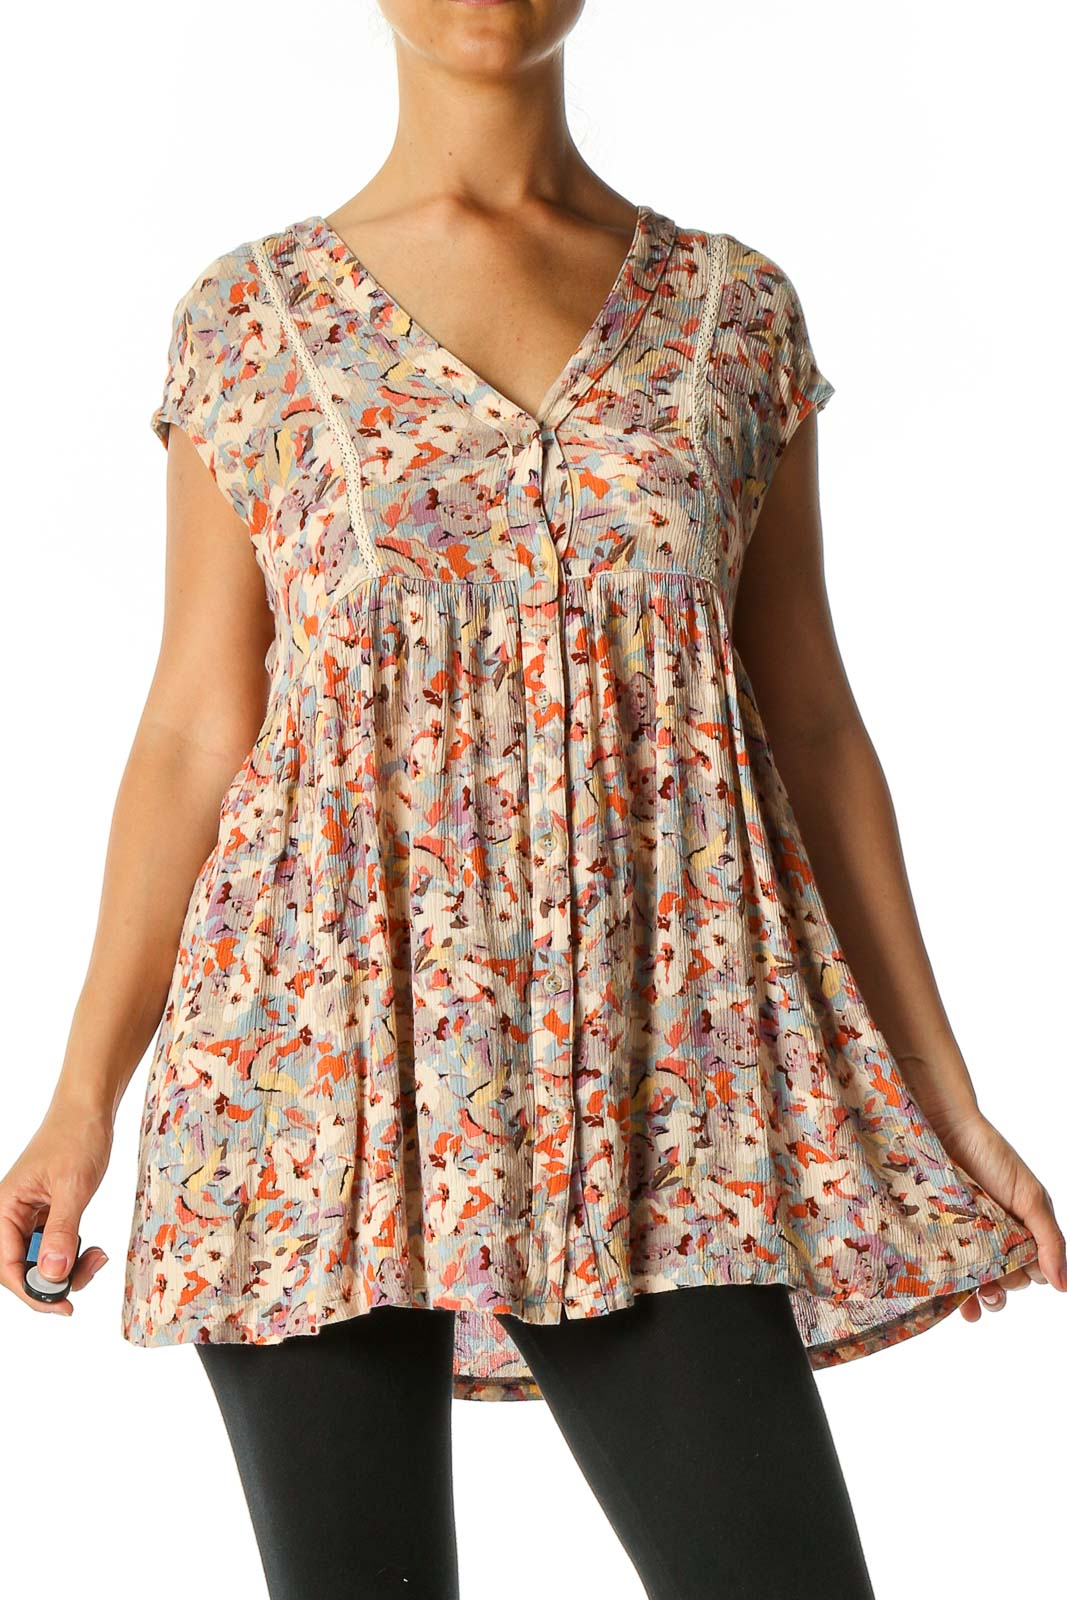 Brown Graphic Print Retro Blouse Front